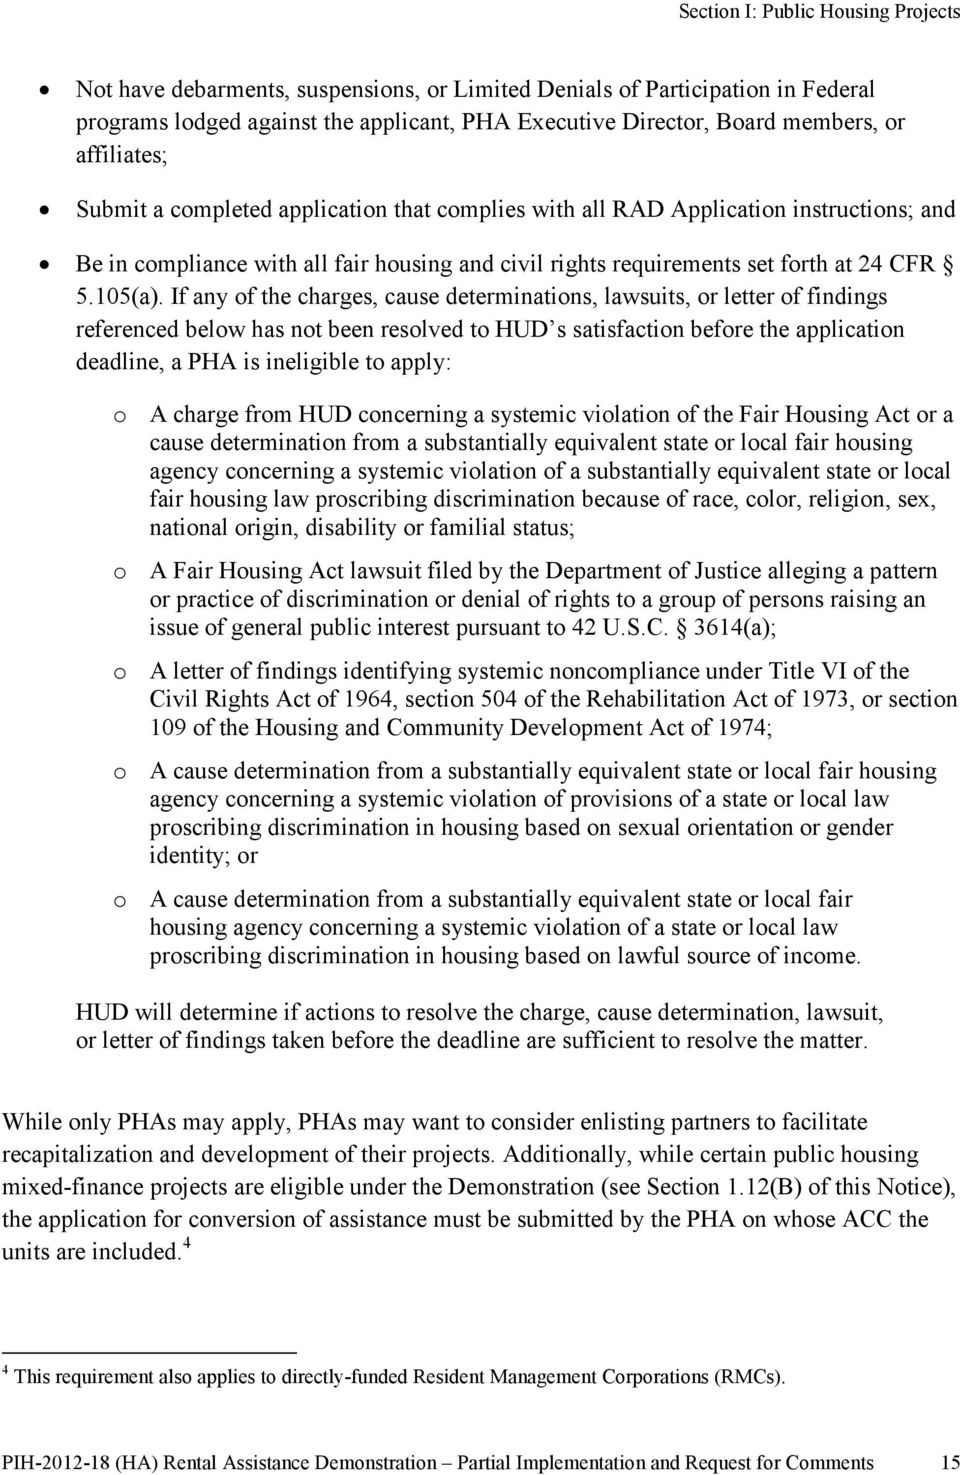 If any of the charges, cause determinations, lawsuits, or letter of findings referenced below has not been resolved to HUD s satisfaction before the application deadline, a PHA is ineligible to